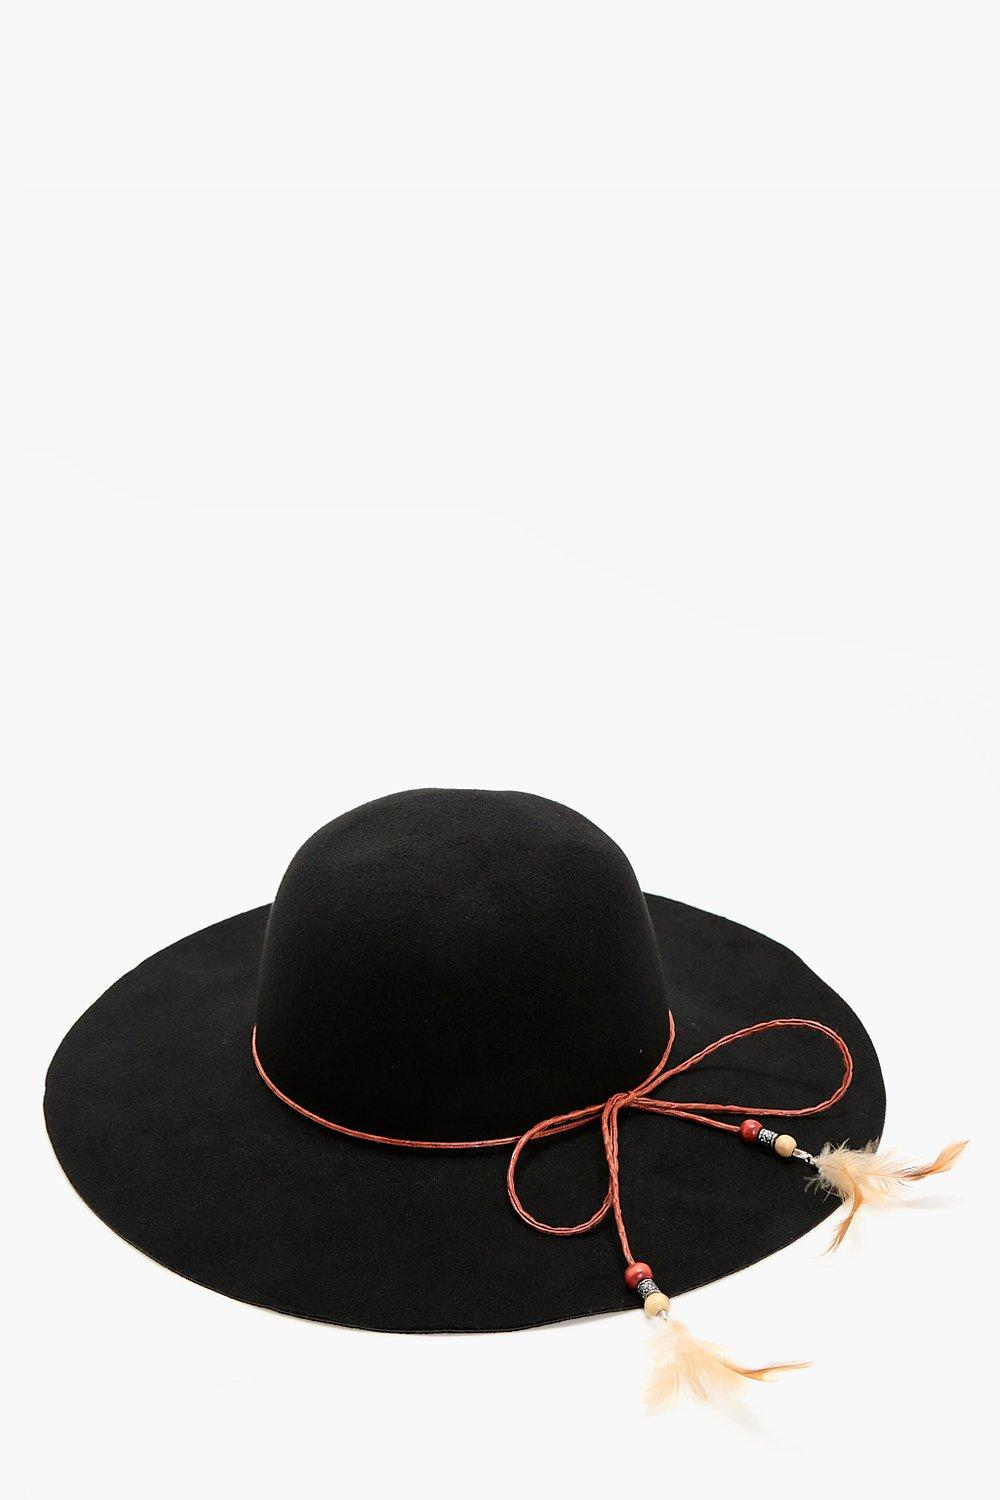 Feather Trim Floppy Hat - black - Alice Feather Tr